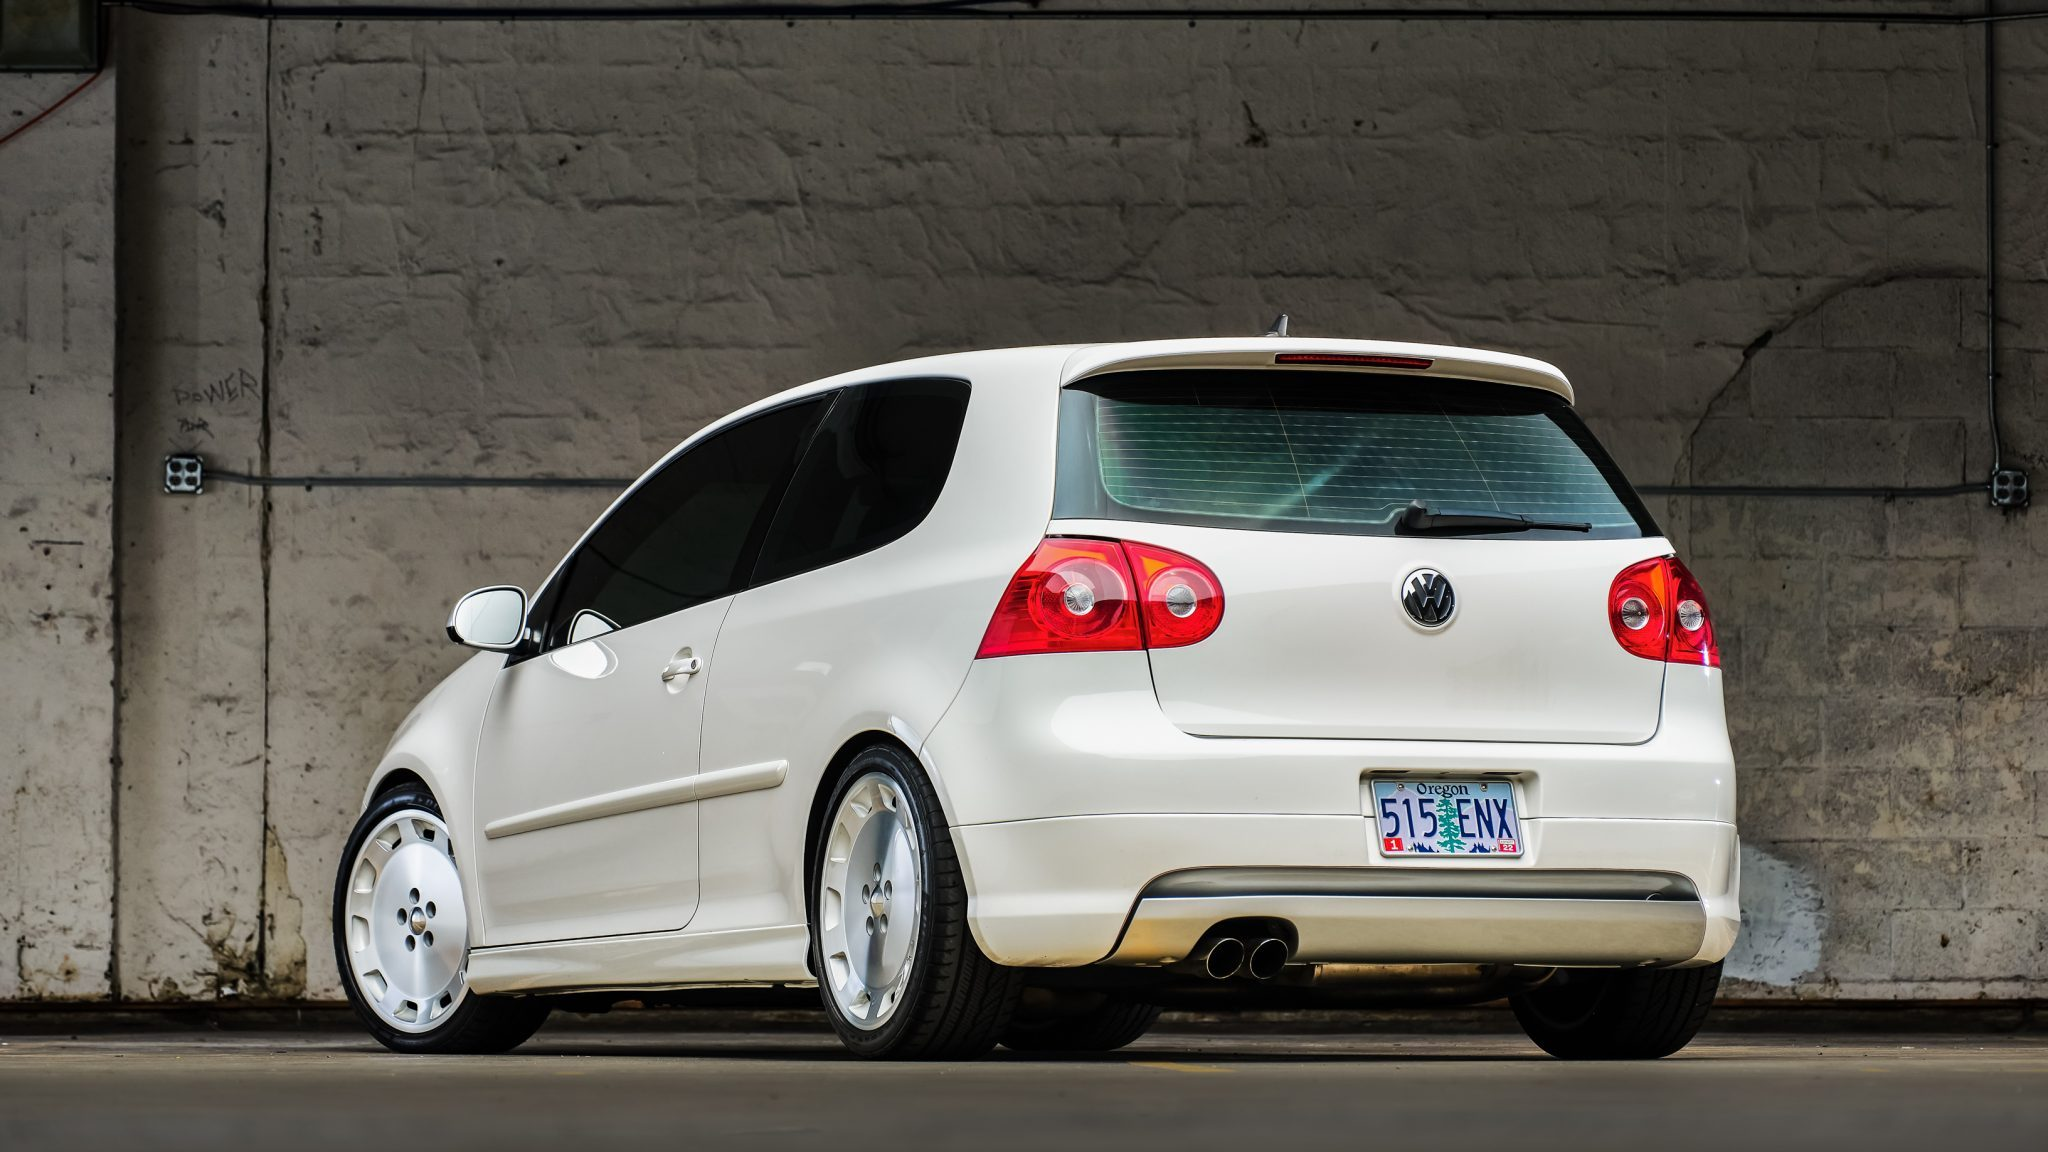 15941394341fe3f57bfc5VW-GTI-for-Sale-A-GC.com-9-scaled